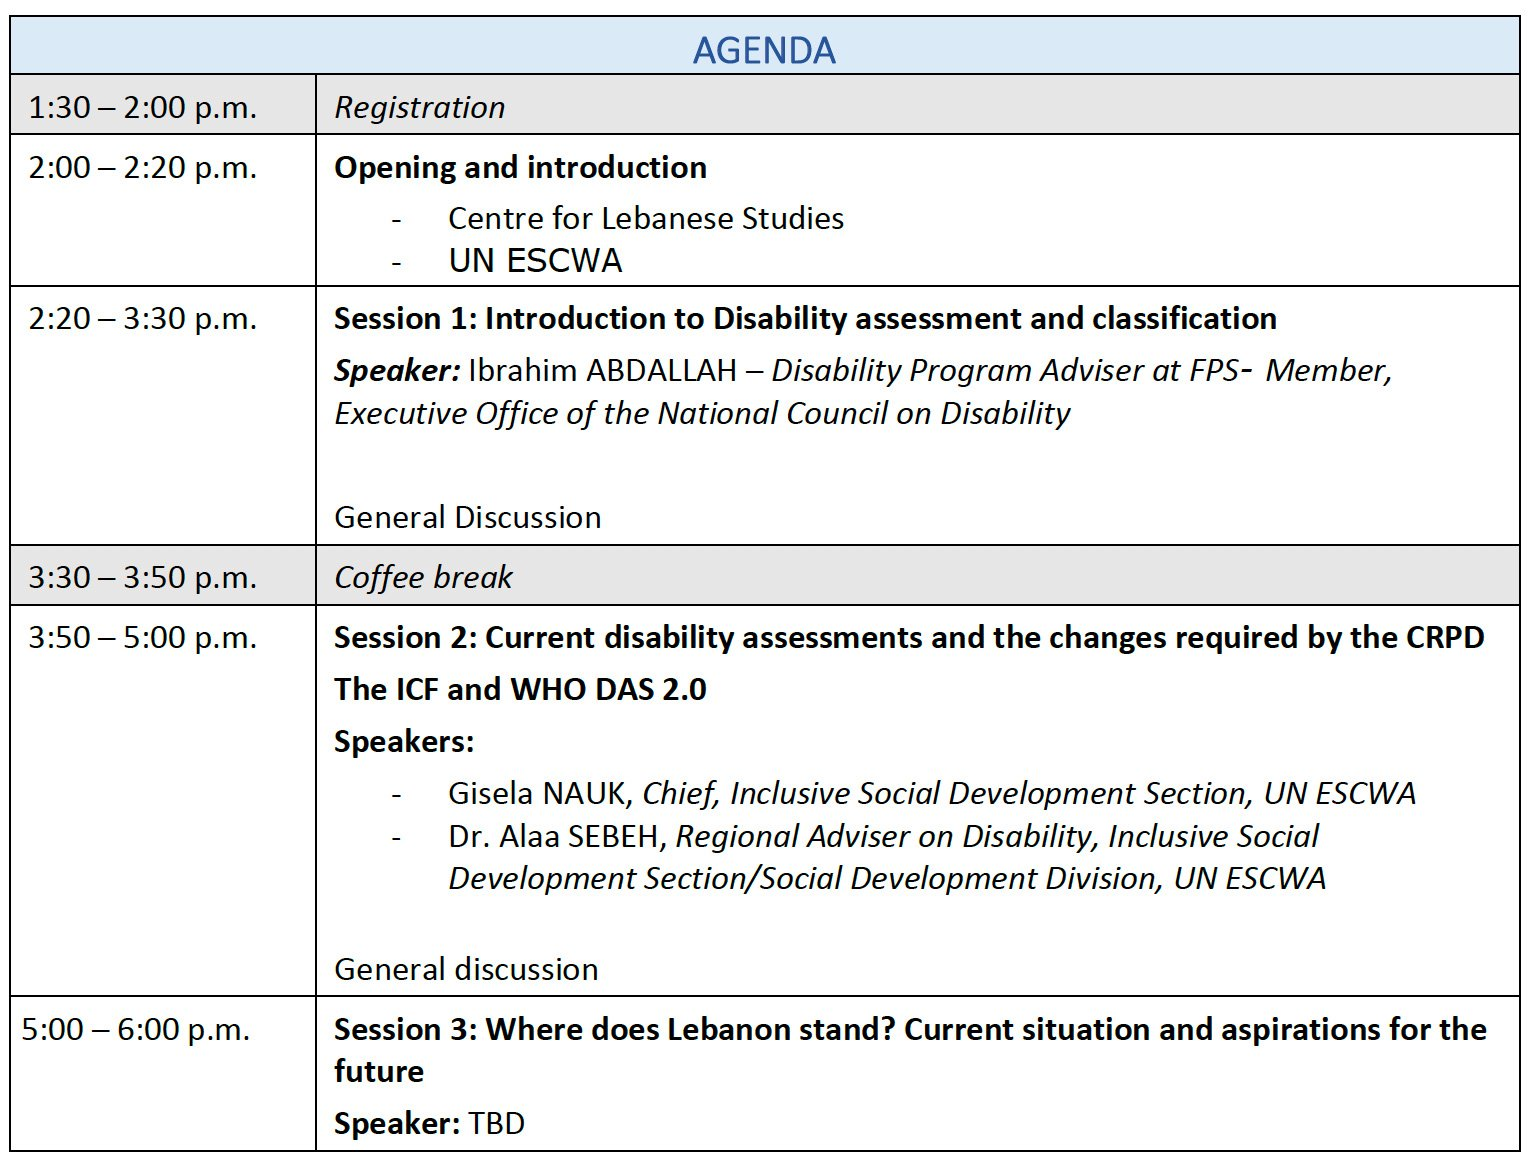 Agenda of Disability Assessment and Determination in Lebanon